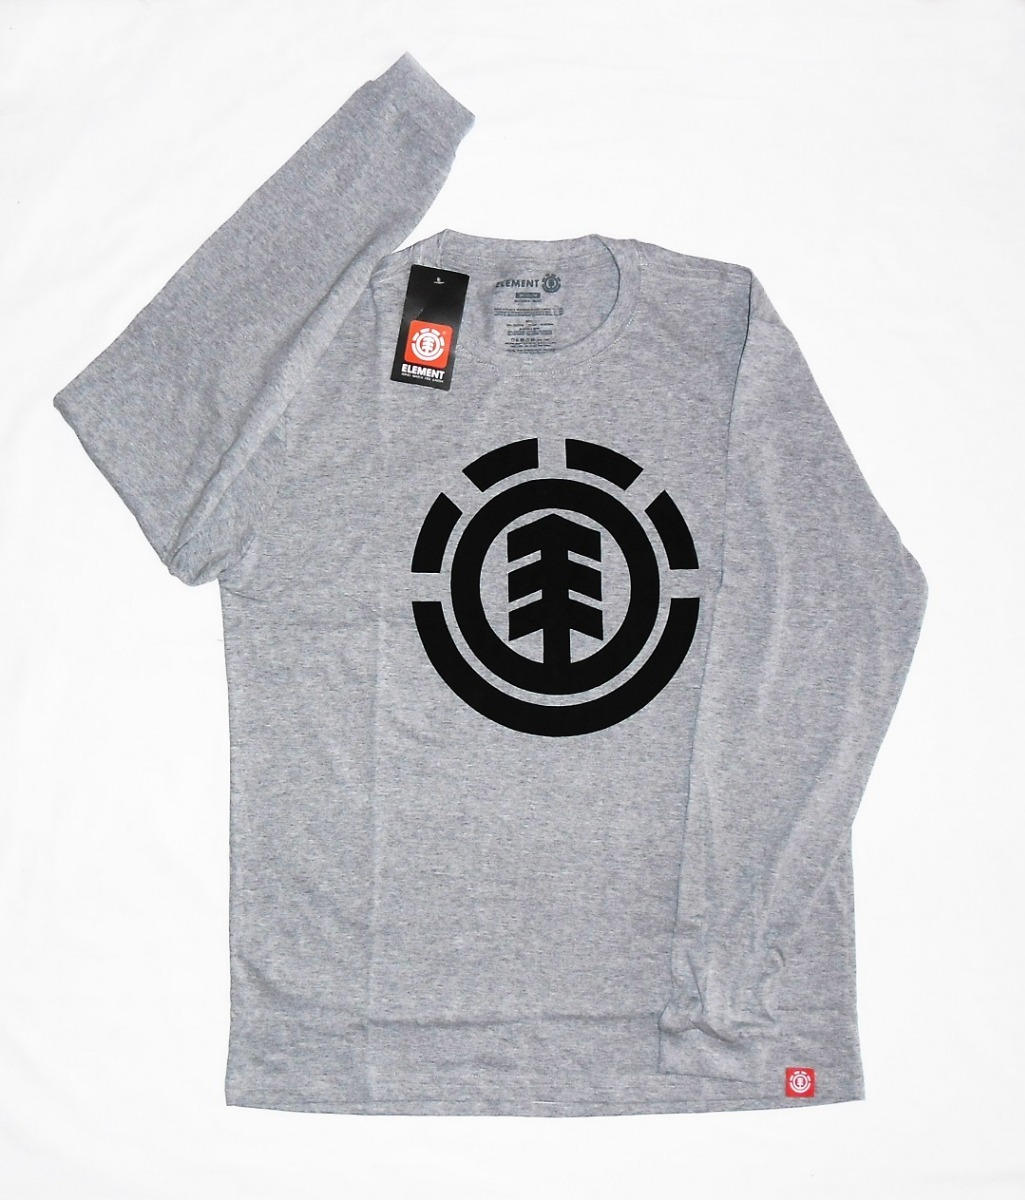 273bc4df6 Camiseta Manga Longa Element Skateboards - R  59